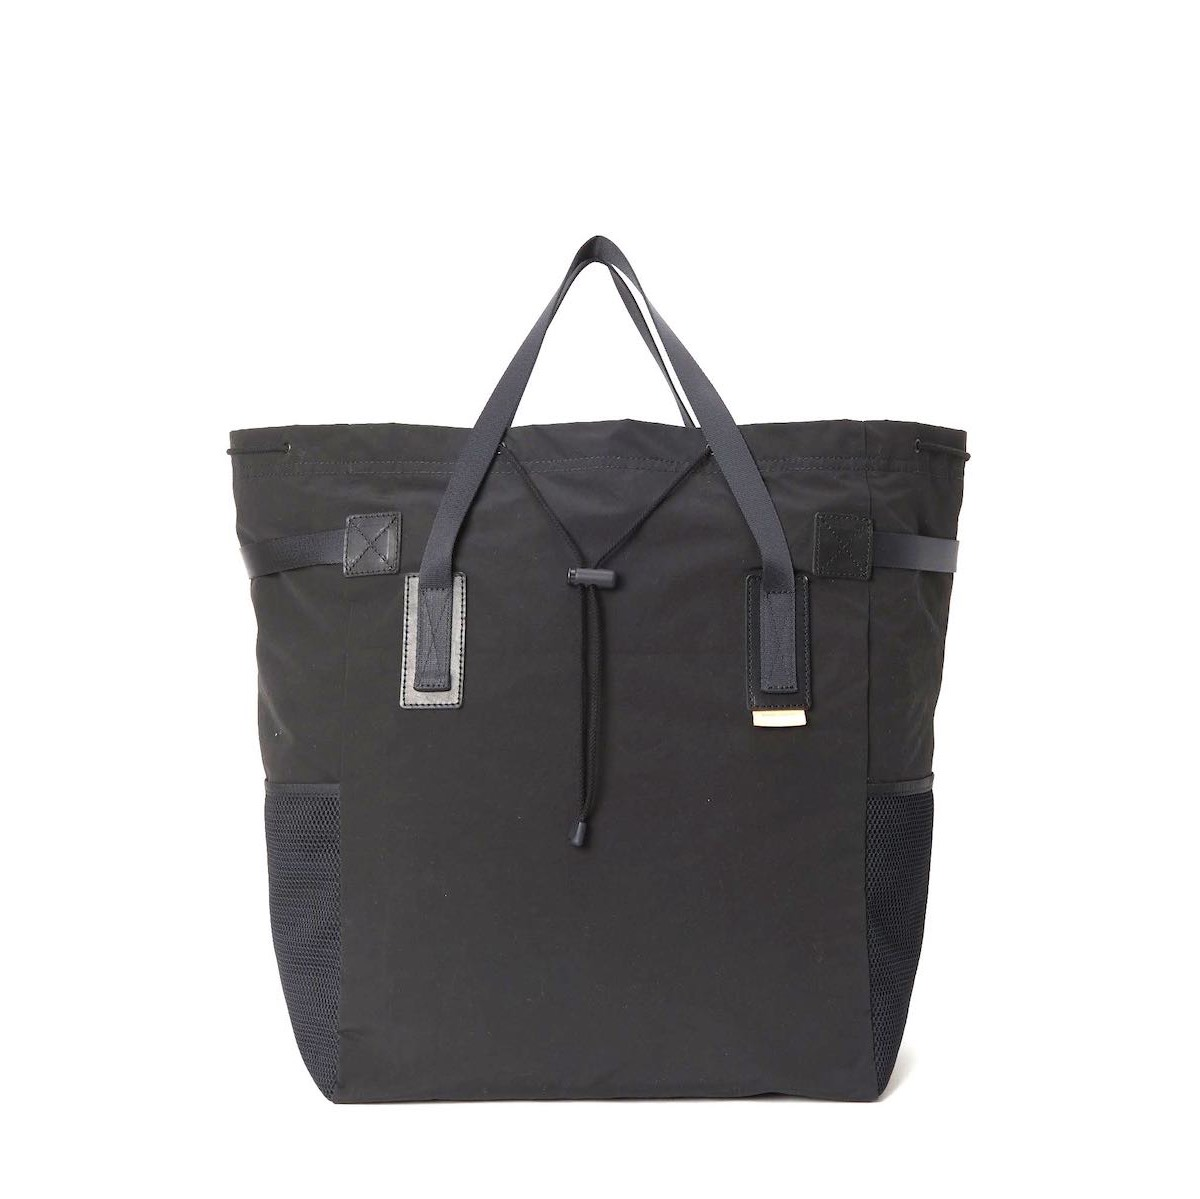 Hender Scheme / functional tote bag (Black)